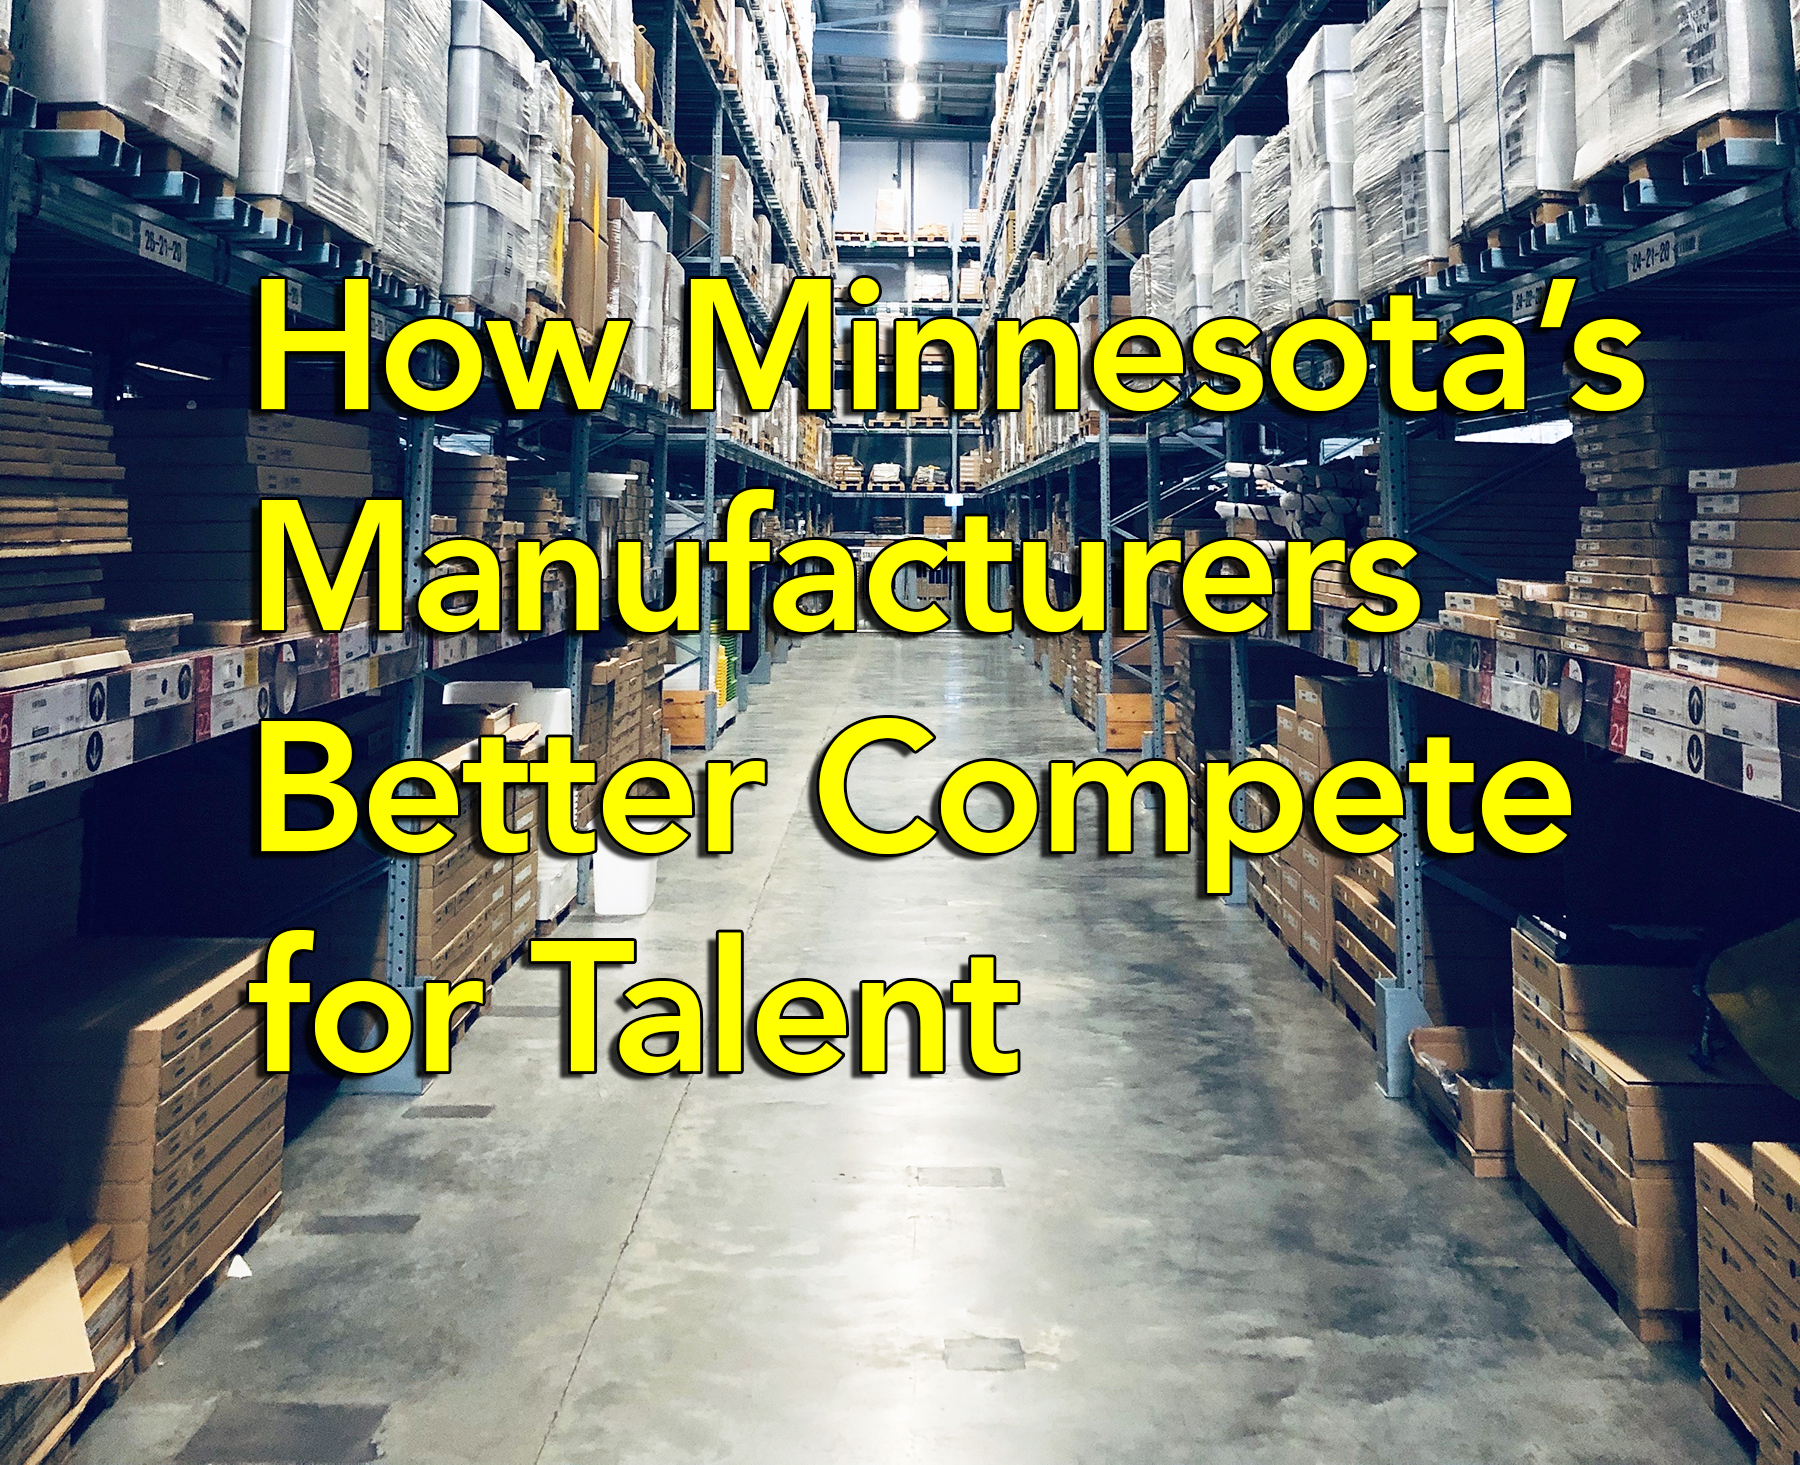 Image for How Minnesota's Manufacturers Better Compete for Talent